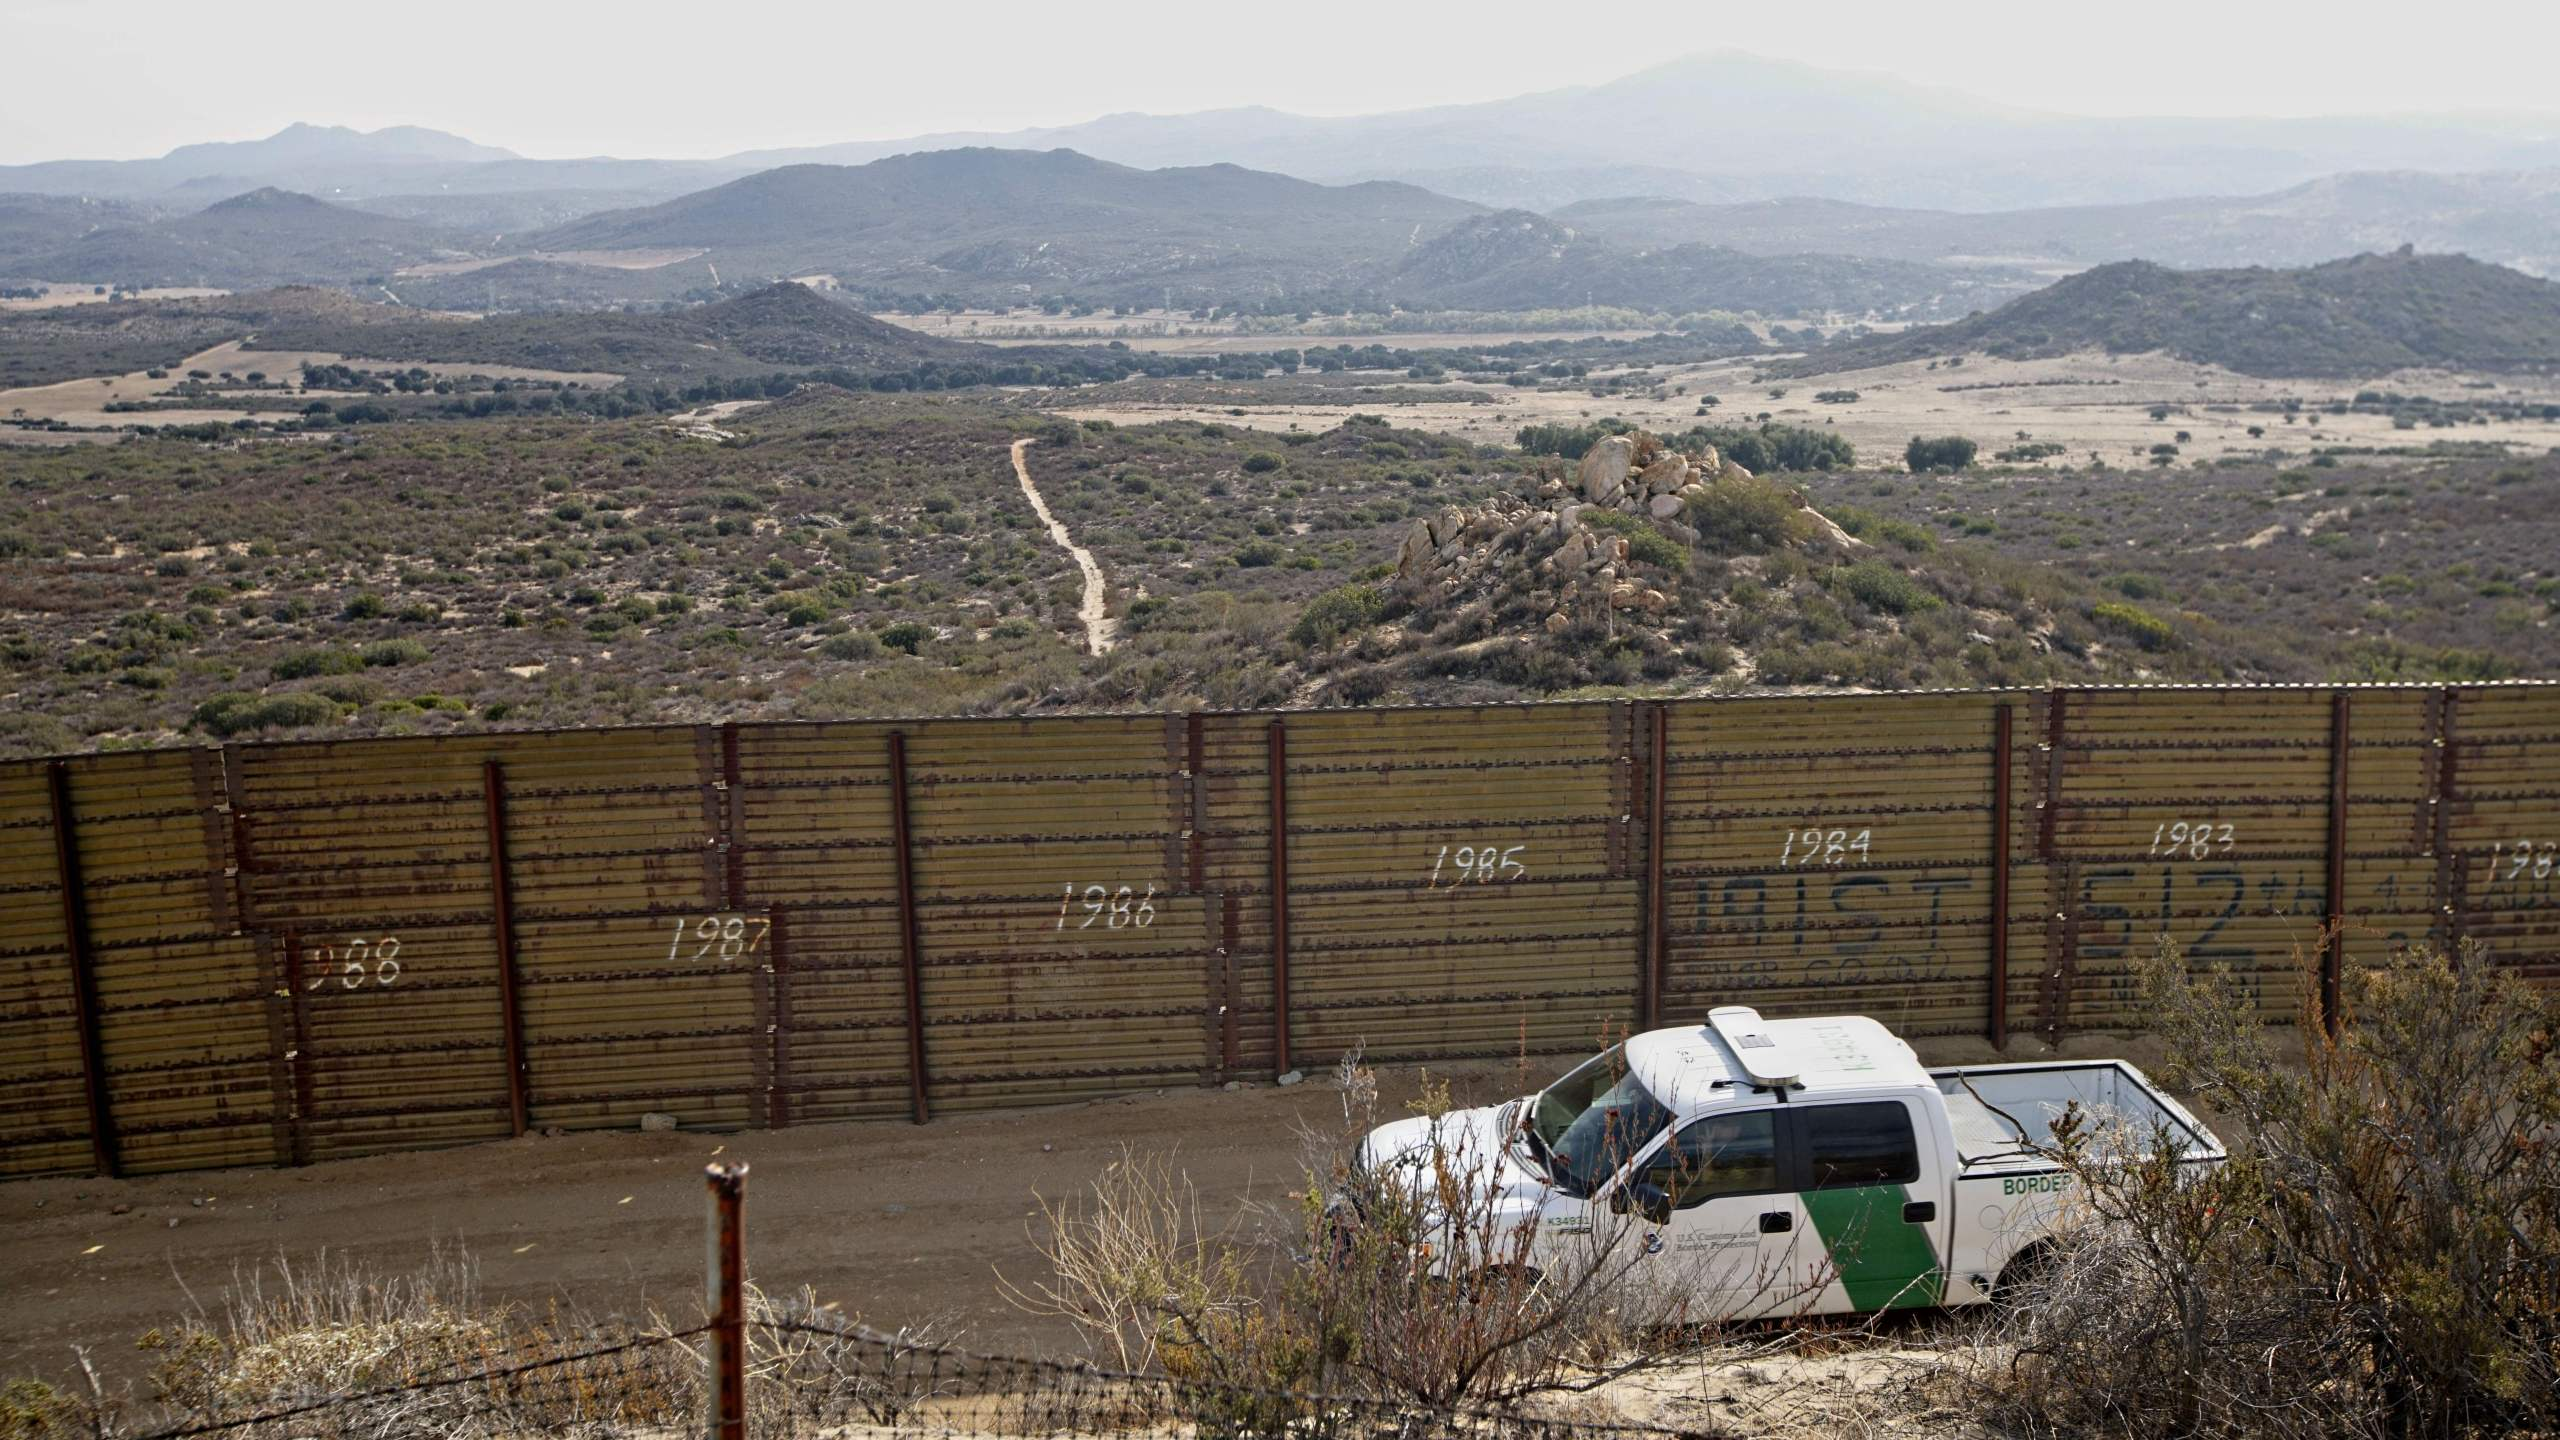 A Border Patrol vehicle is seen along the US-Mexico border in Campo, California on Nov. 17, 2018. (Credit: Sandy Huffaker/ AFP/Getty Images)